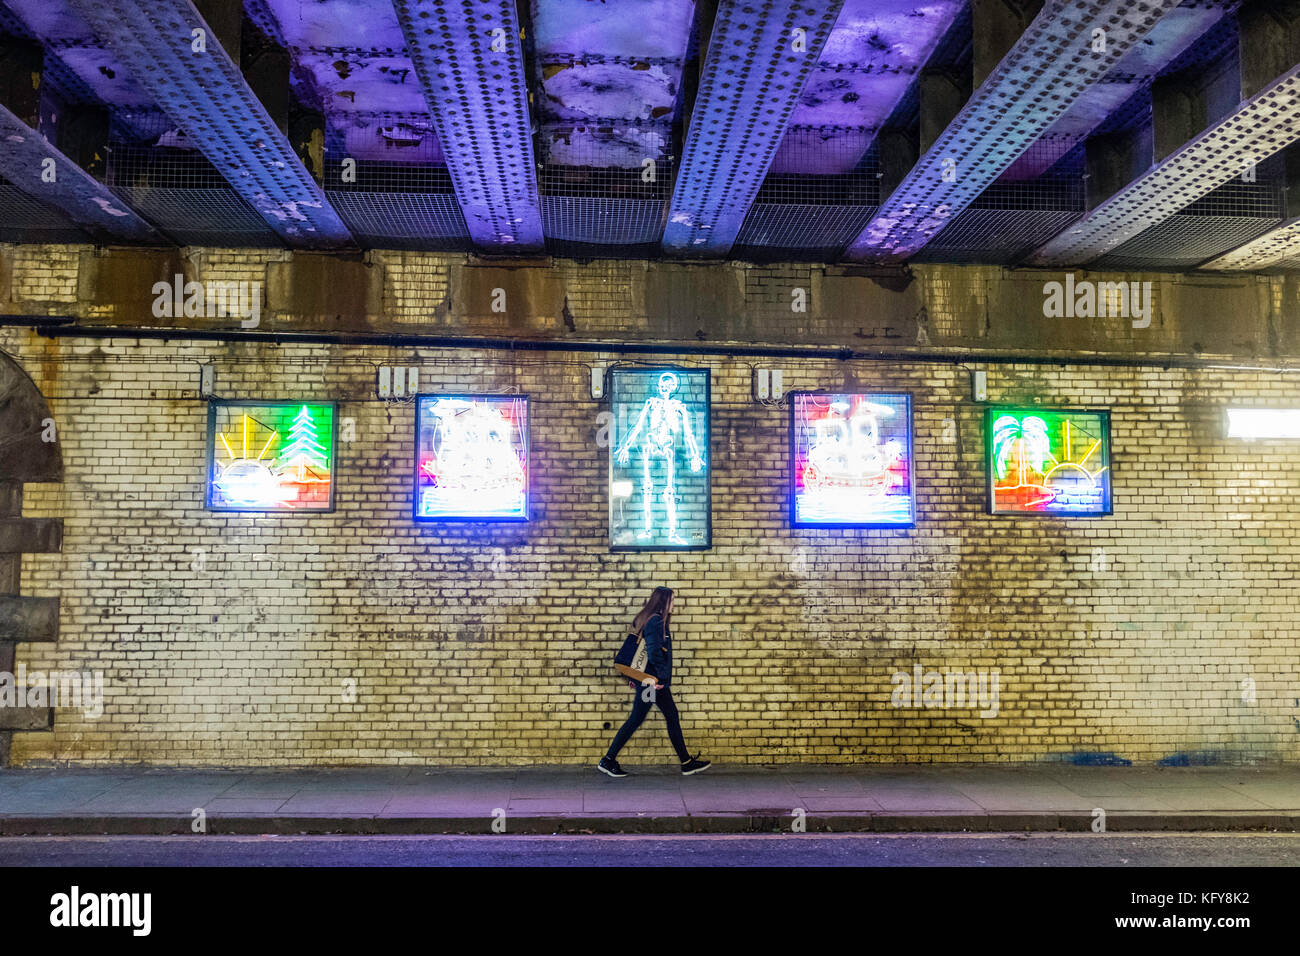 Street art made from colourful neon lights on underpass in central Edinburgh, Scotland, United Kingdom - Stock Image